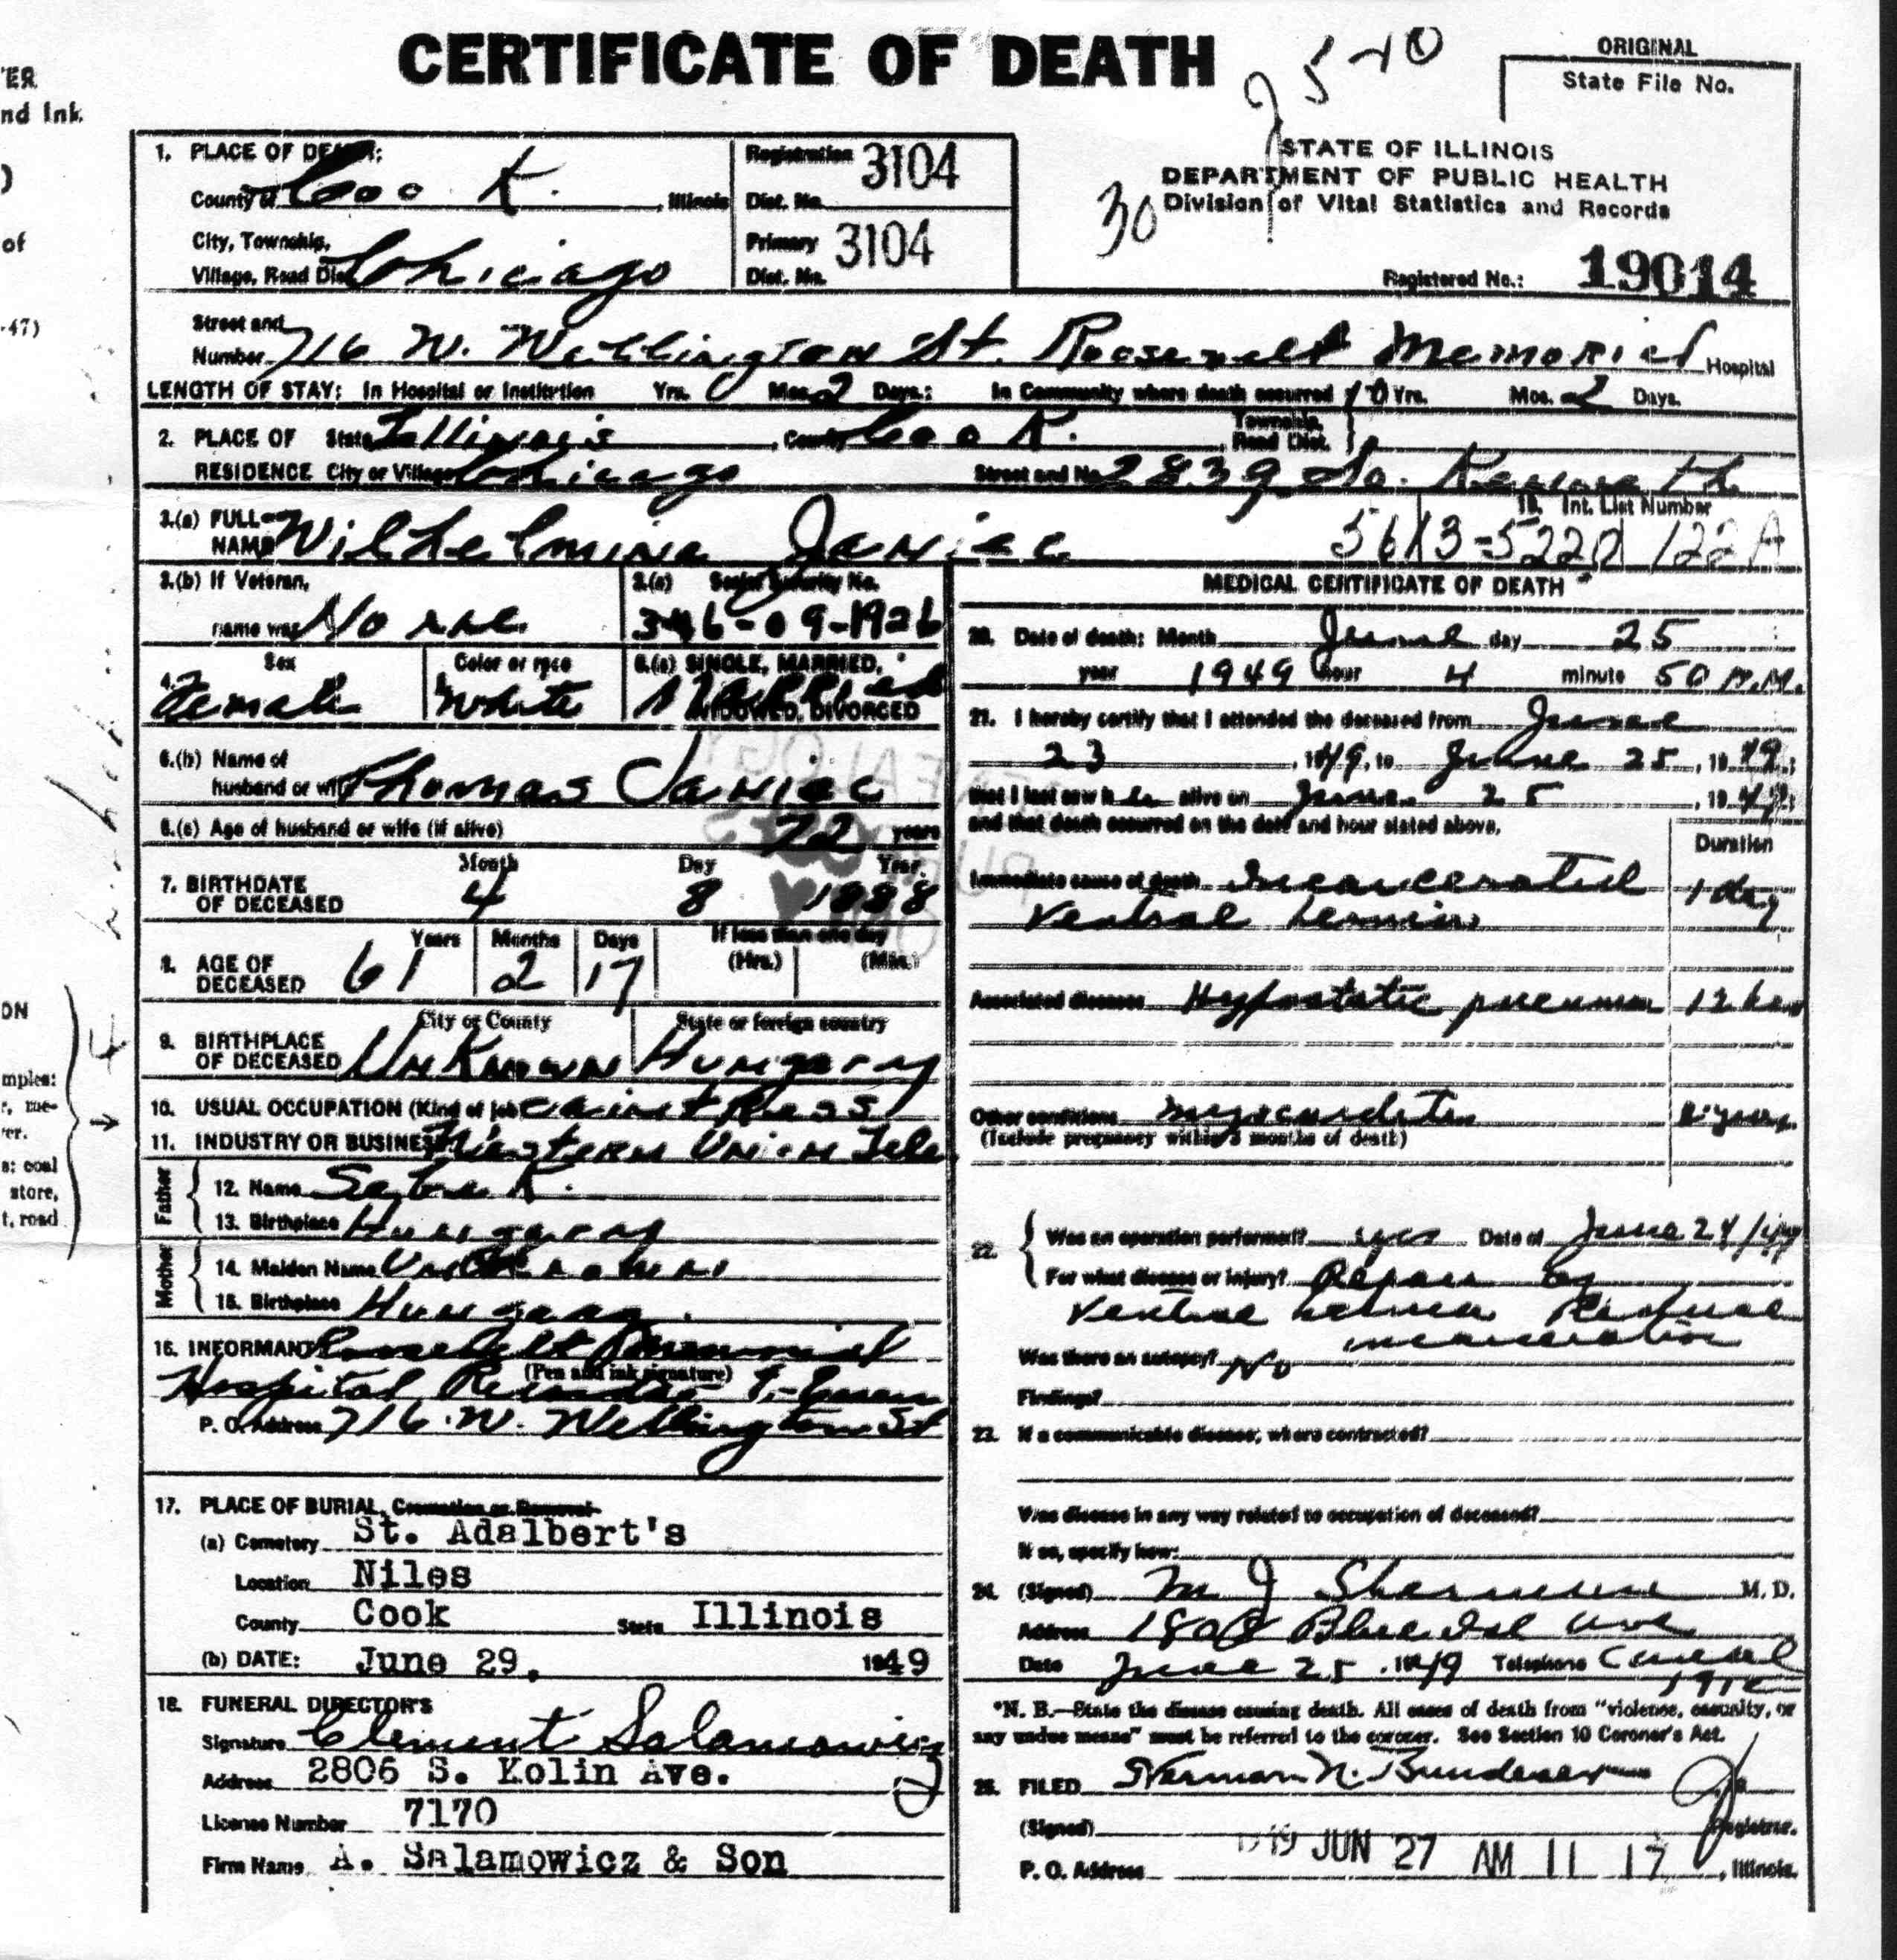 Descendants of walenty janiec and zofia slaczka cook county illinois united states 25 june 1949 death certificate chicago 1betcityfo Image collections